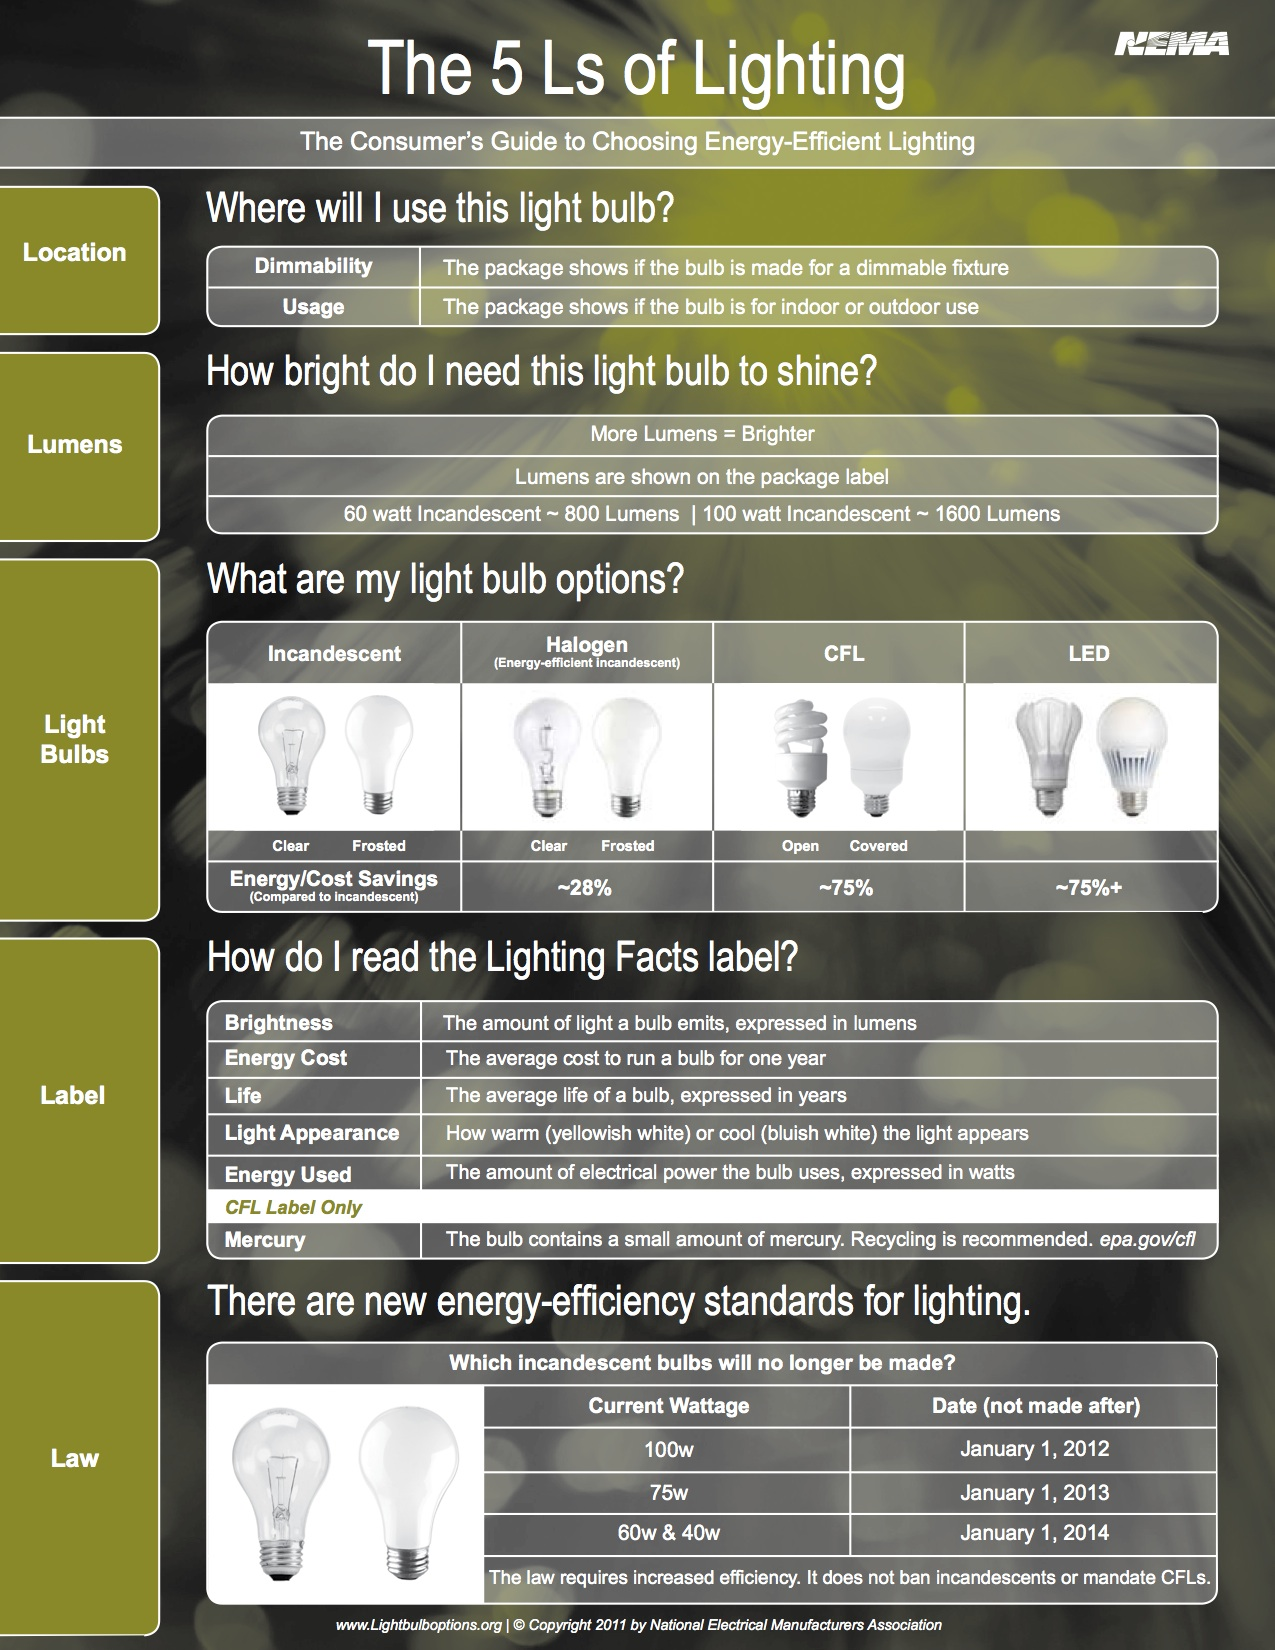 The Consumer's Guide to Choosing Energy-Efficient Lighting ...